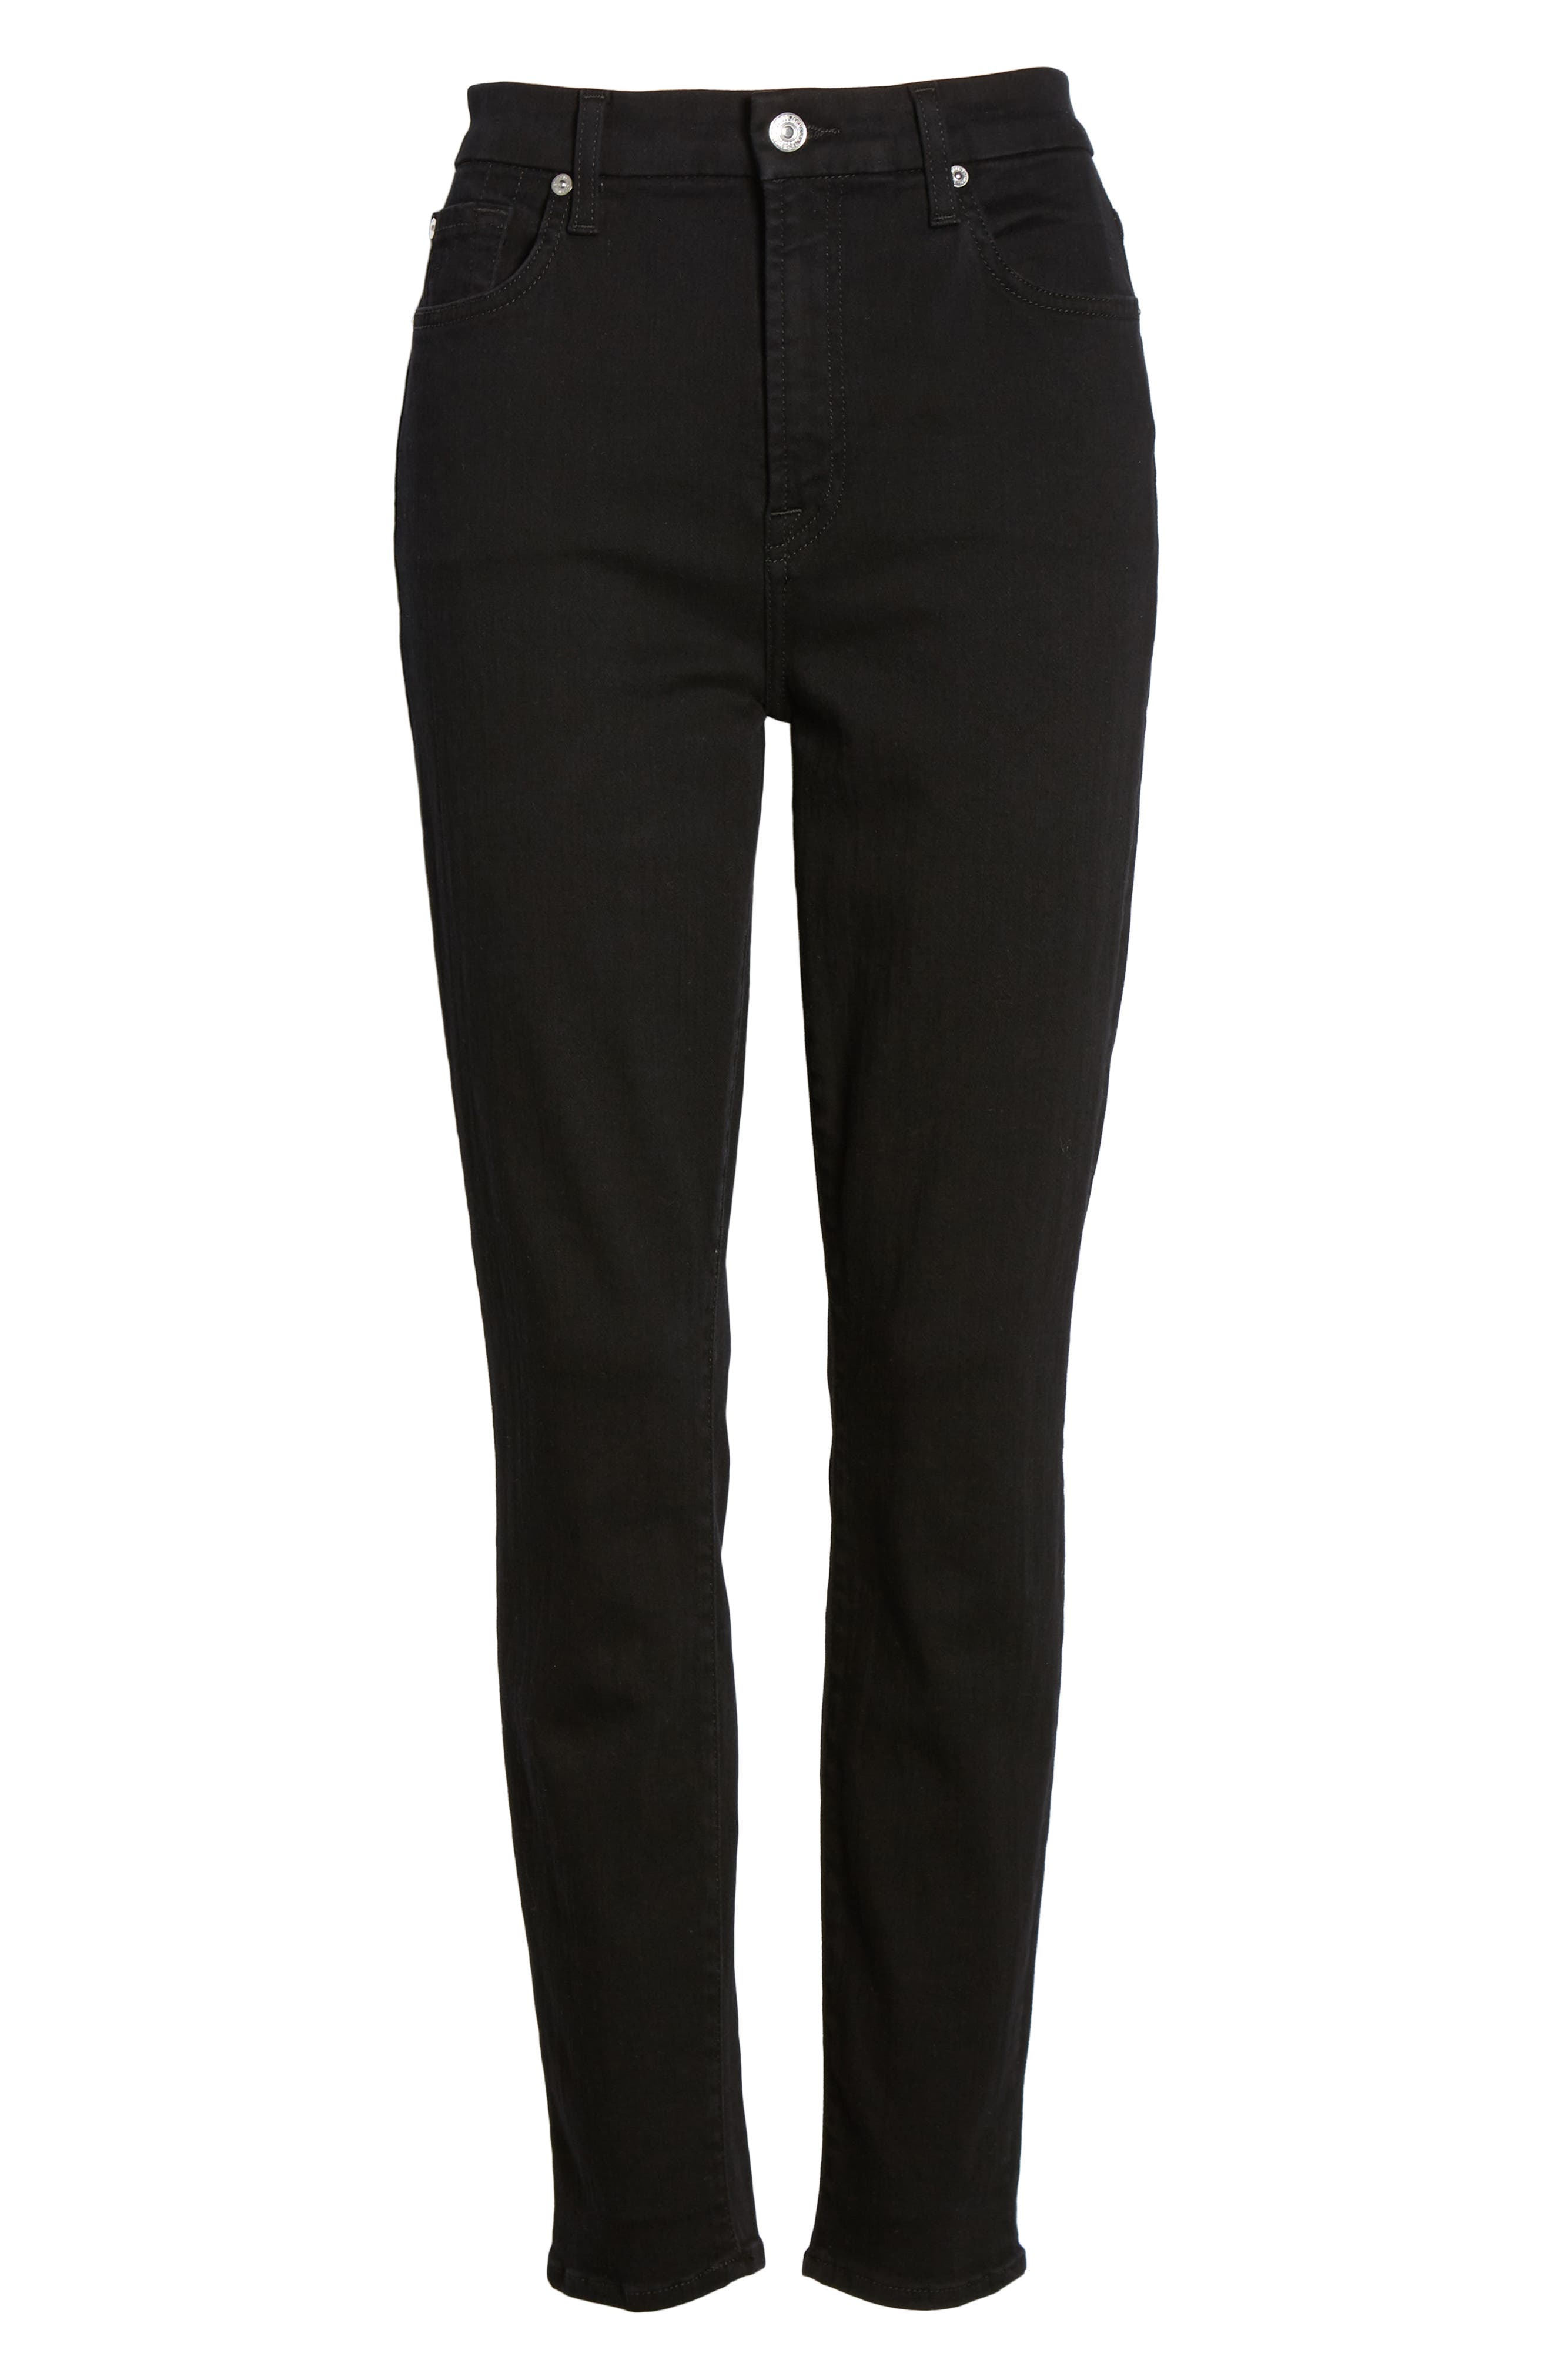 7 FOR ALL MANKIND<SUP>®</SUP>, Aubrey Super High Waist Ankle Skinny Jeans, Alternate thumbnail 7, color, PITCH BLACK